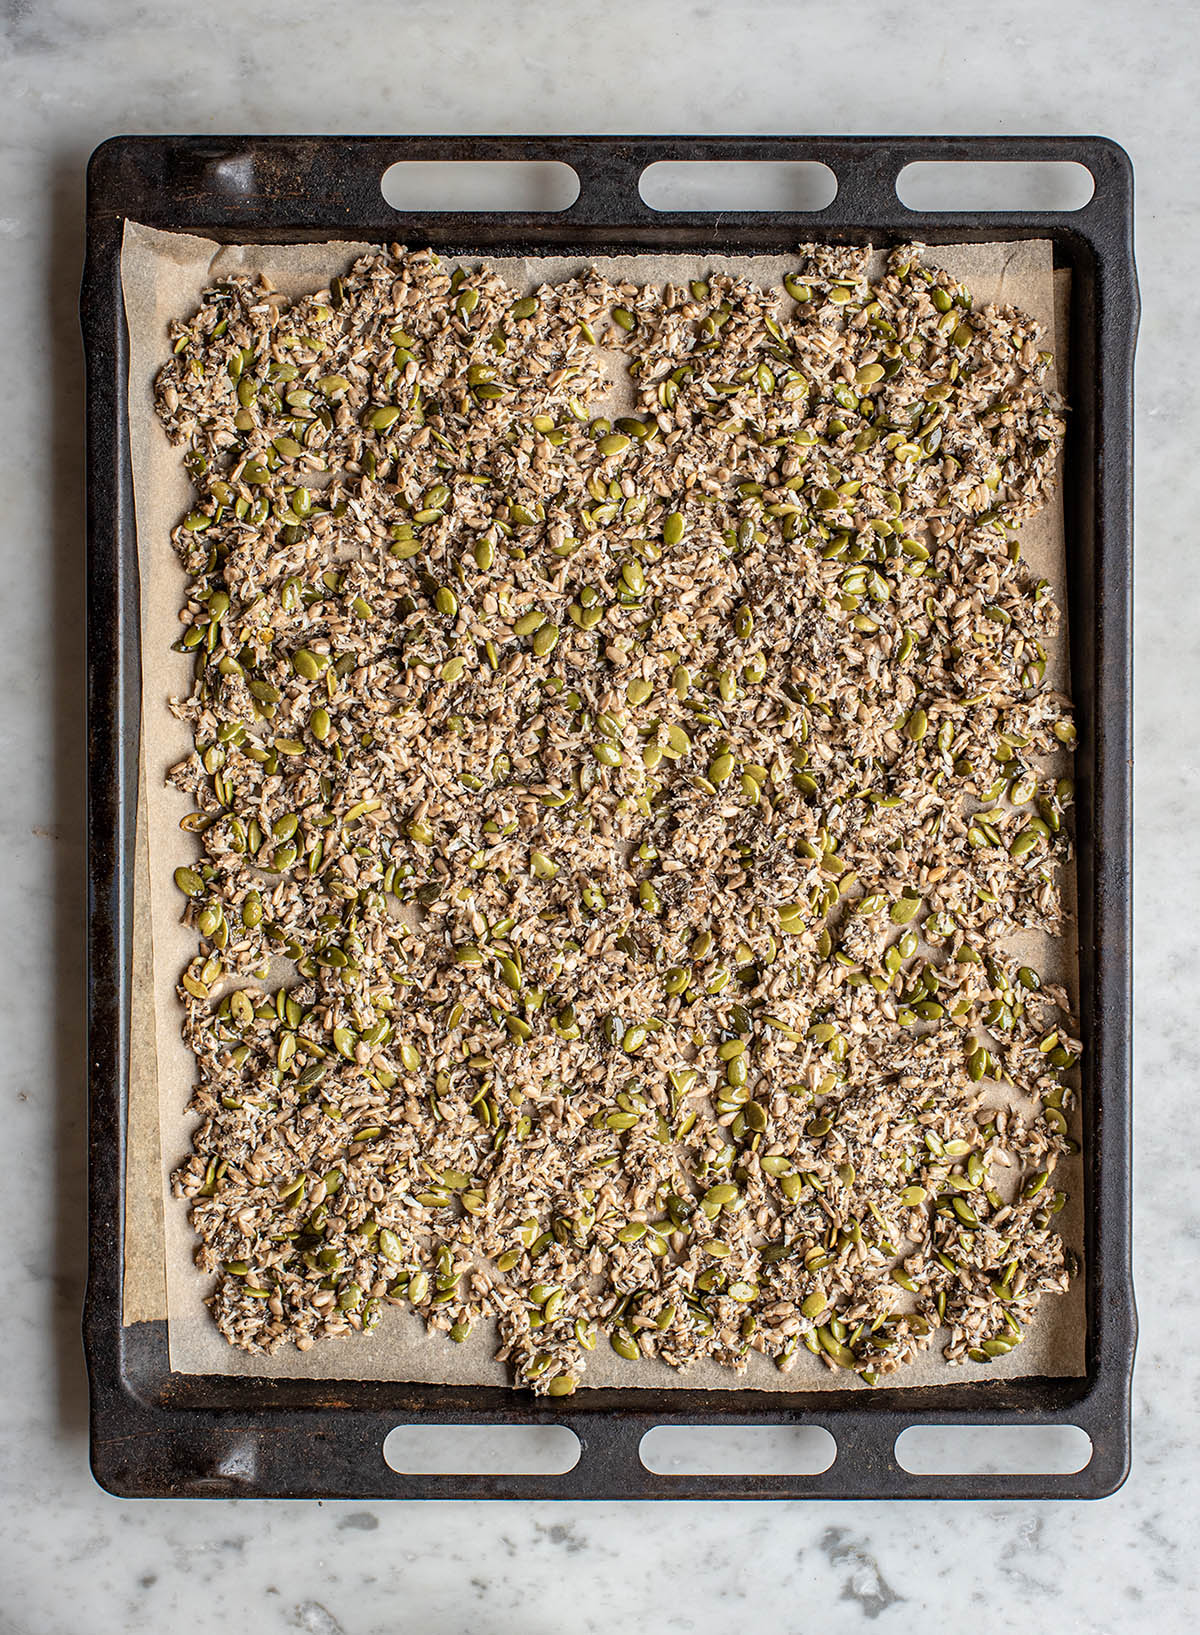 Granola on a large sheet pan, unbaked.